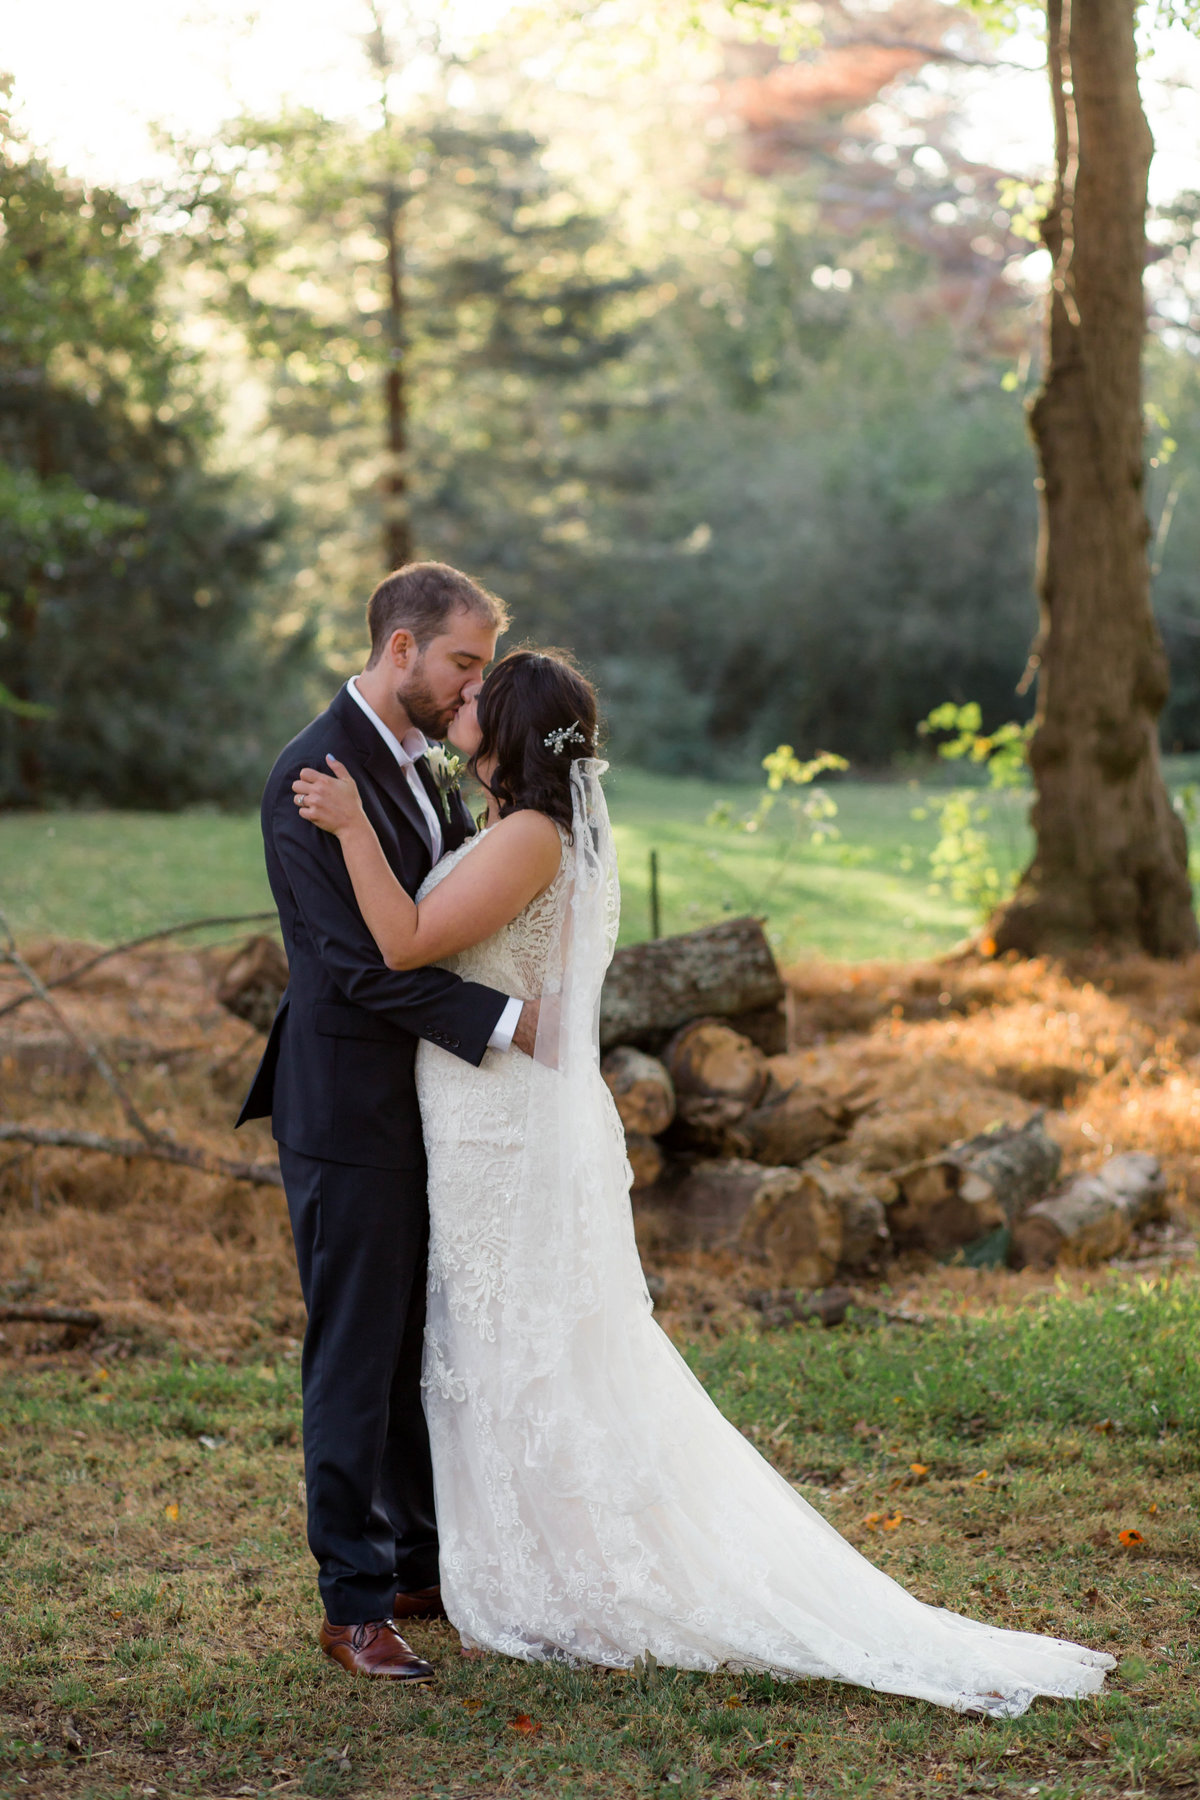 bride and grrom kiss in beautiful backyard wedding for wedding photographer